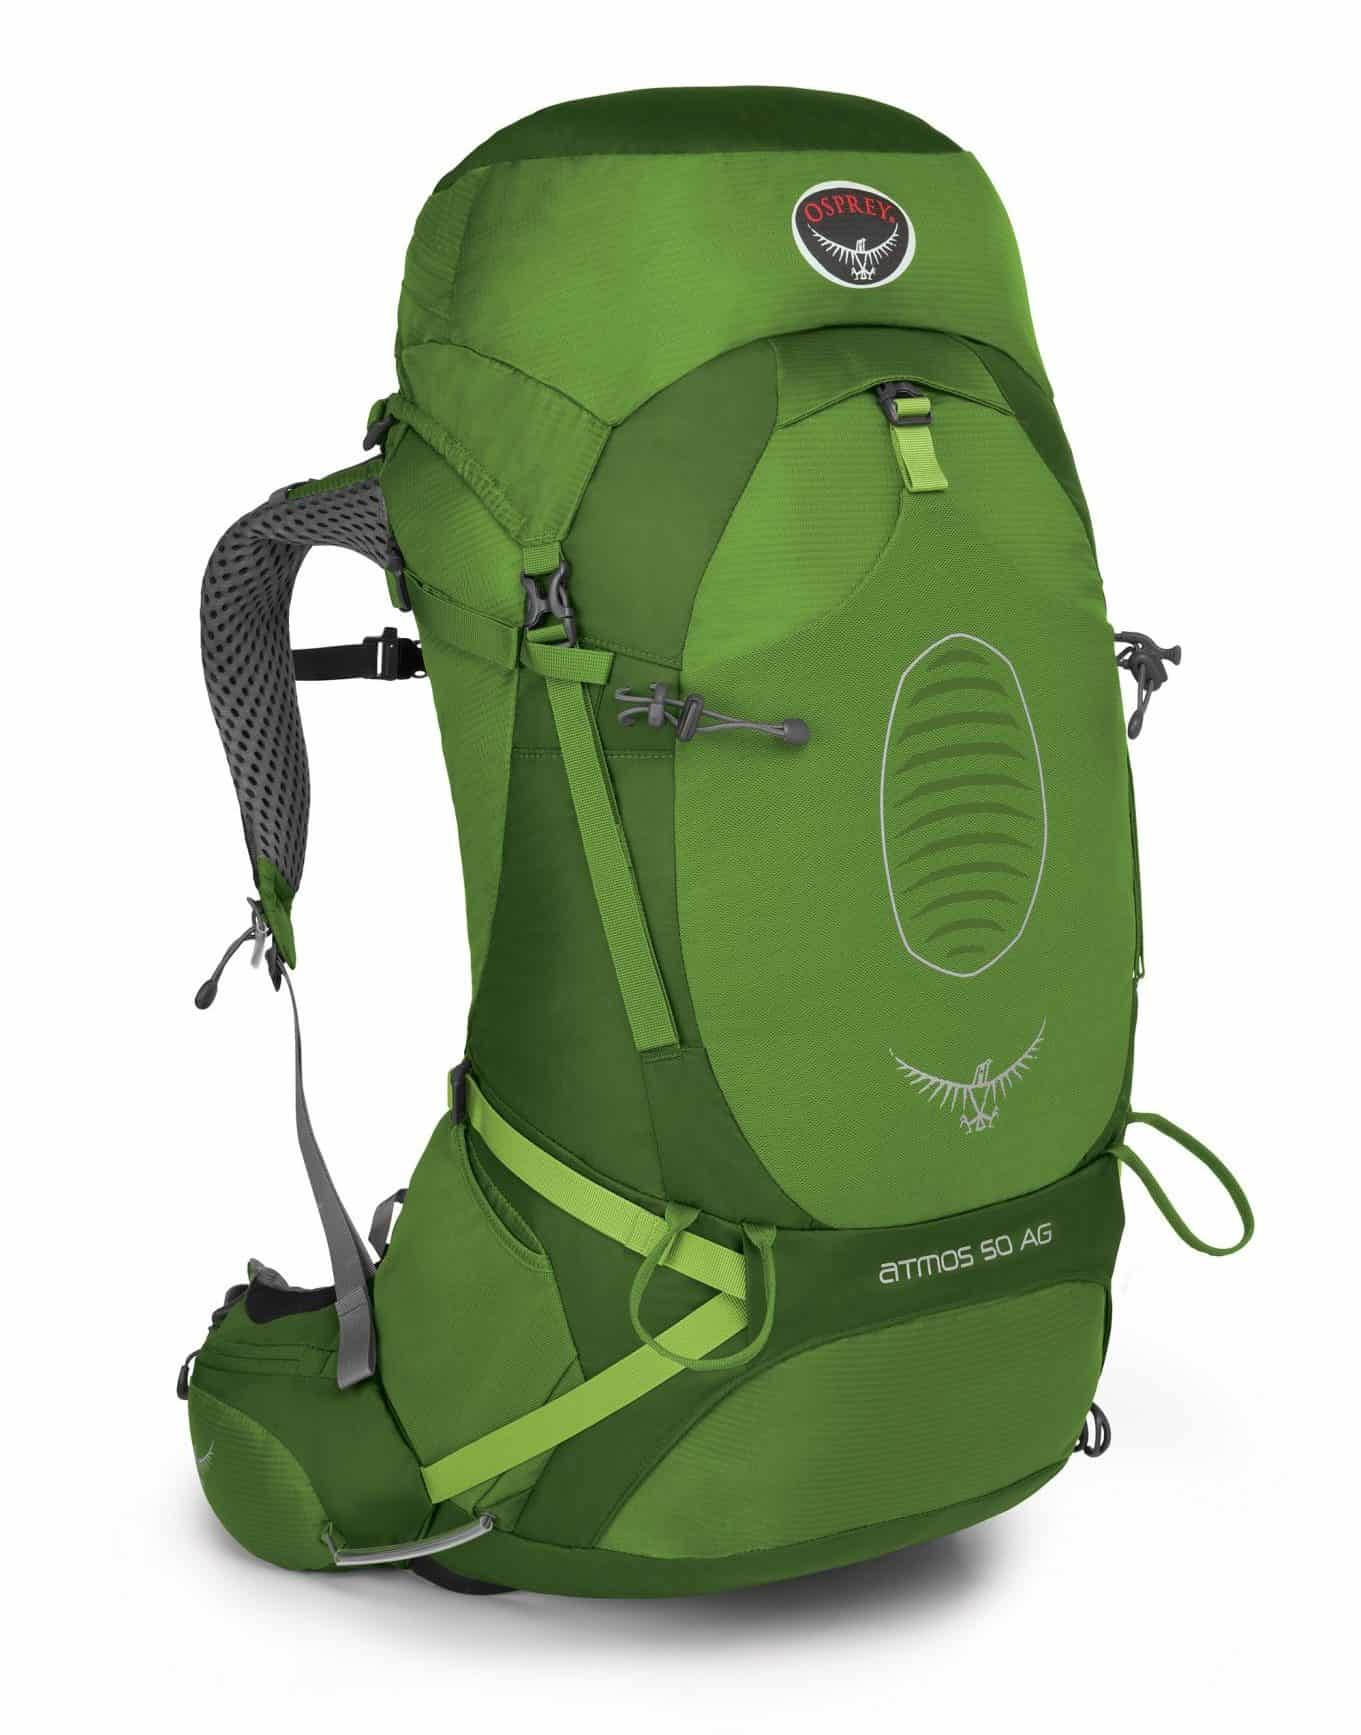 Osprey Atmos AG 50 Review